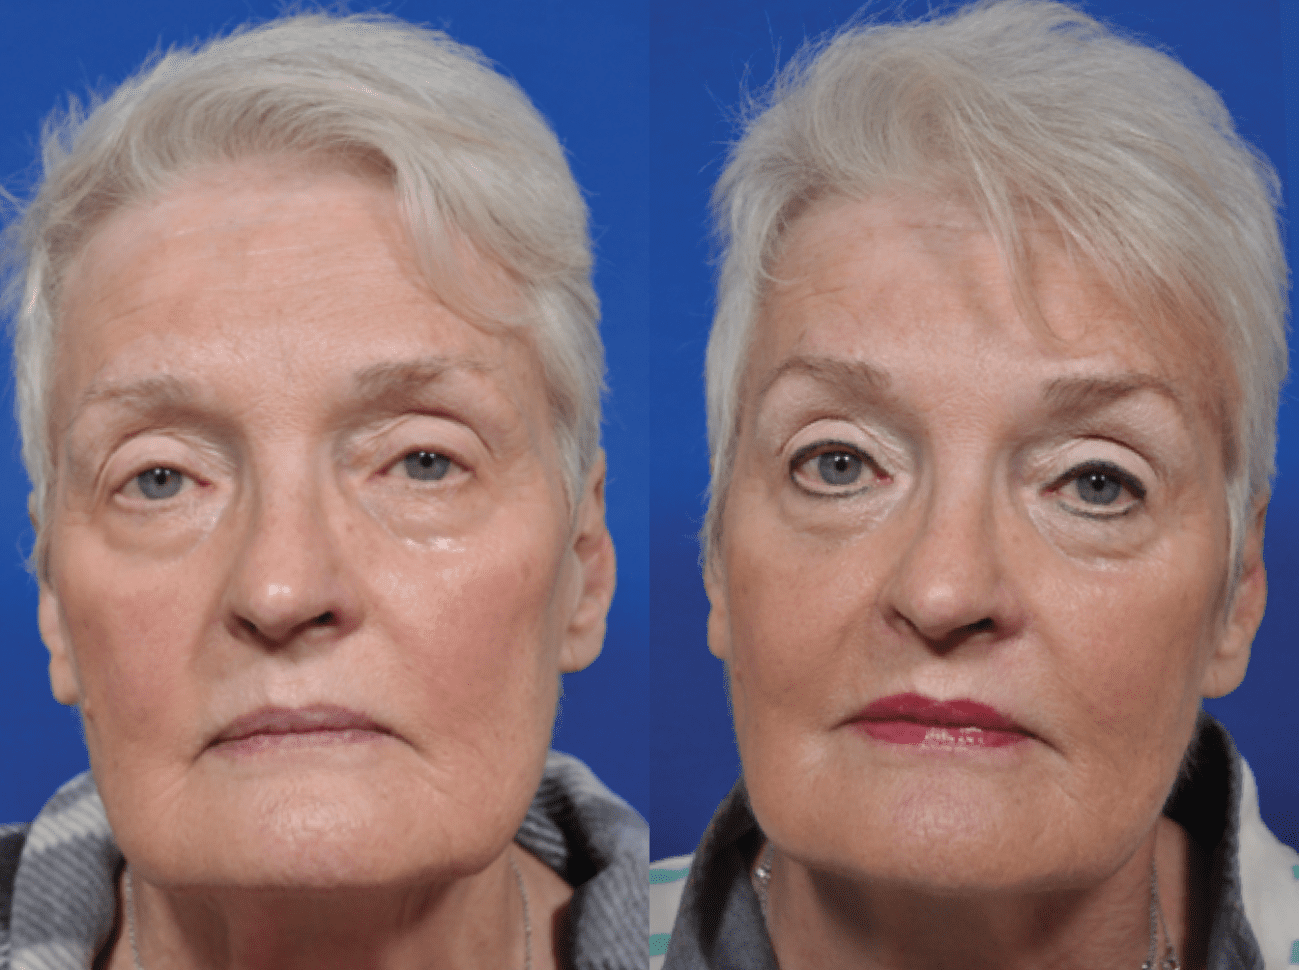 Sculptra Patient Before and After photos